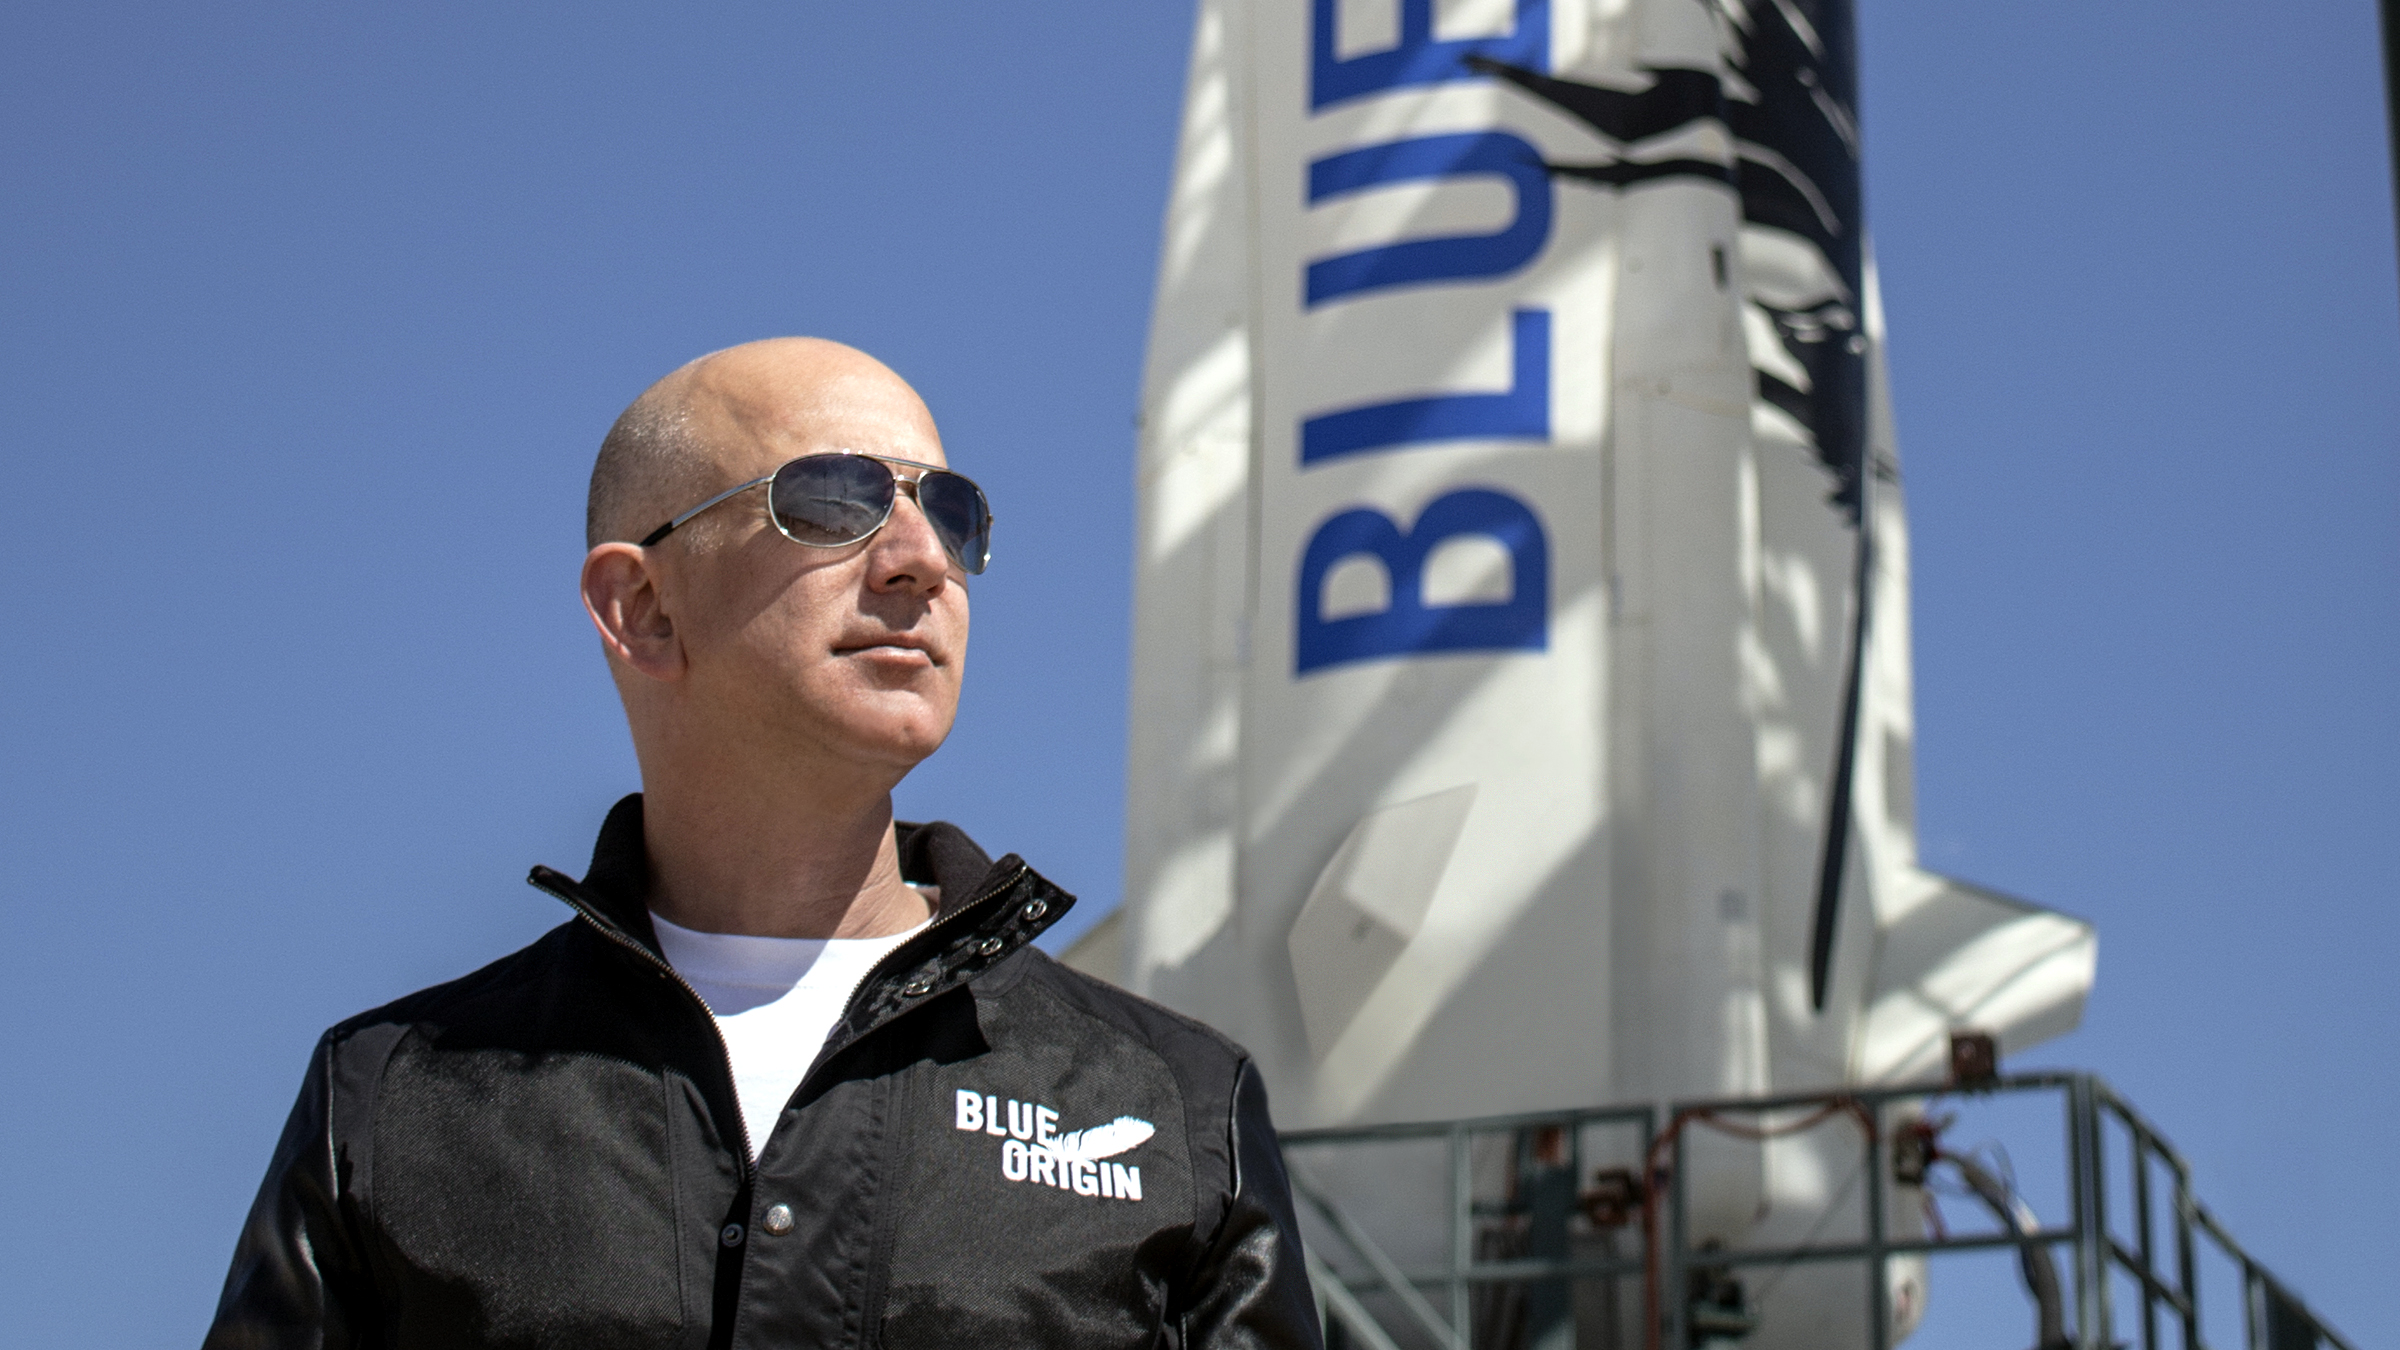 Jeff Bezos is ready for space.